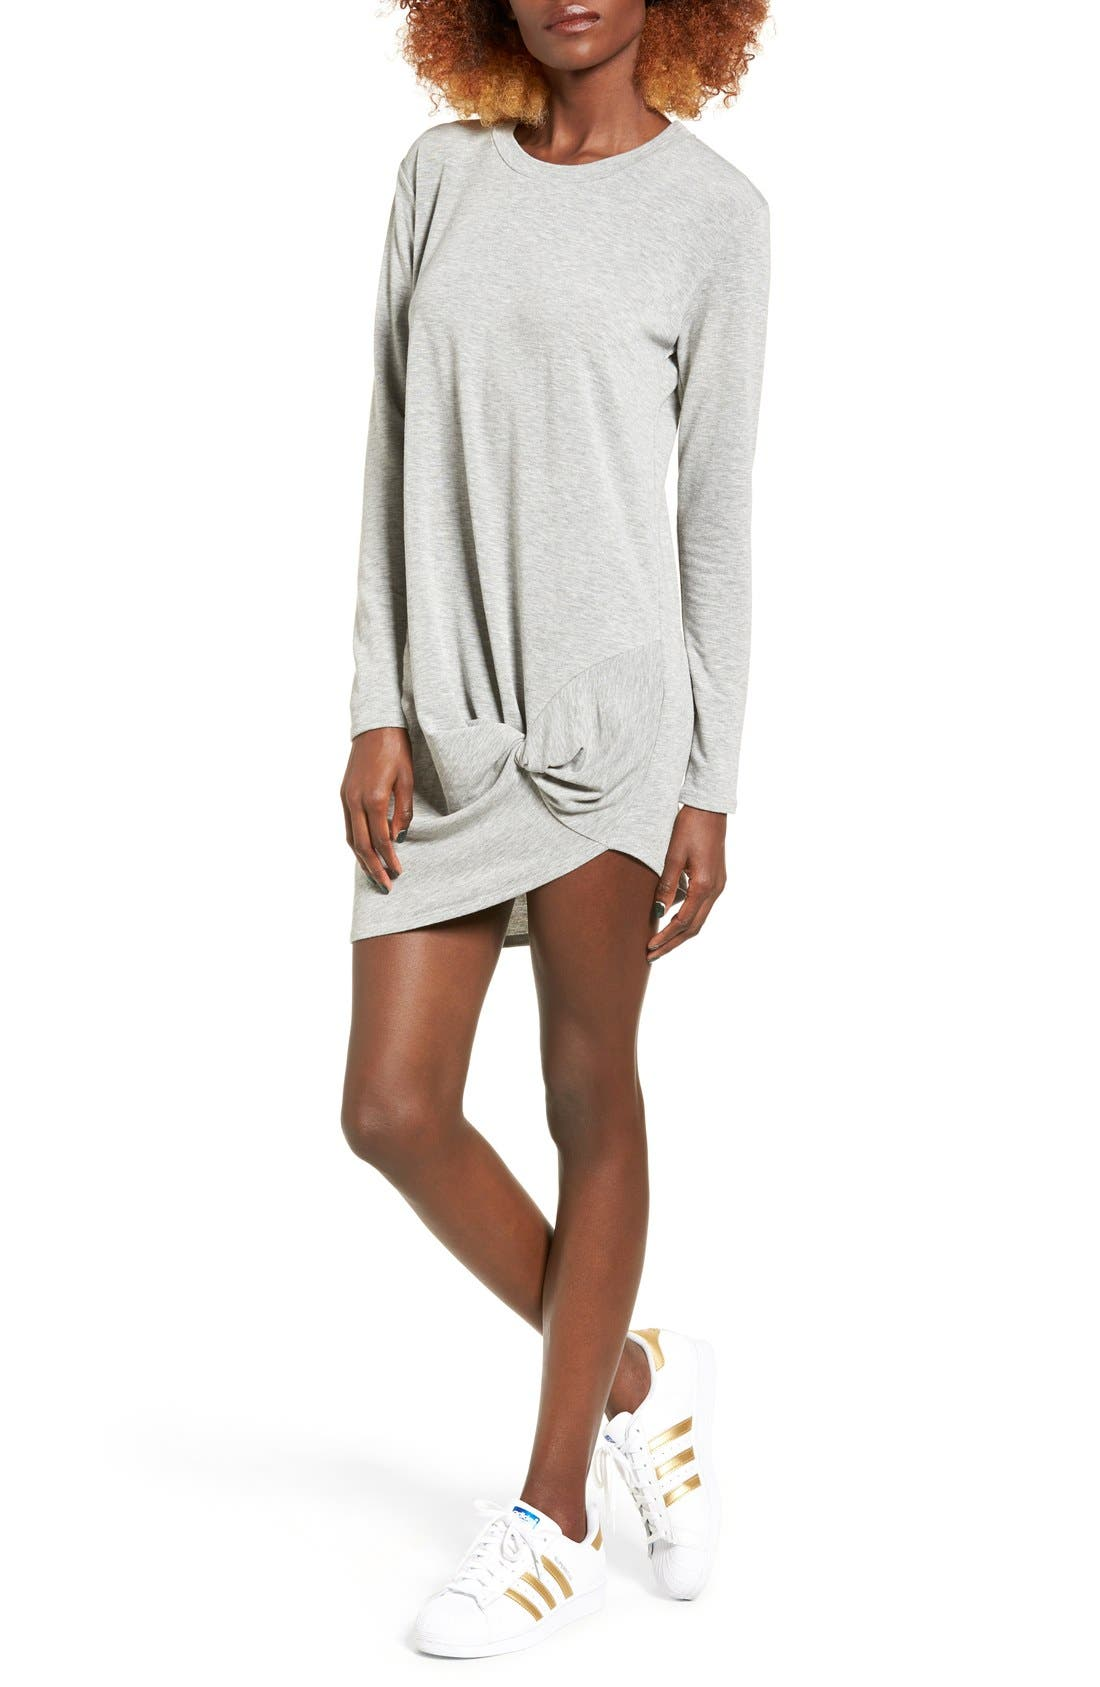 Alternate Image 1 Selected - Michelle by Comune Woodway Knotted Hem T-Shirt Dress